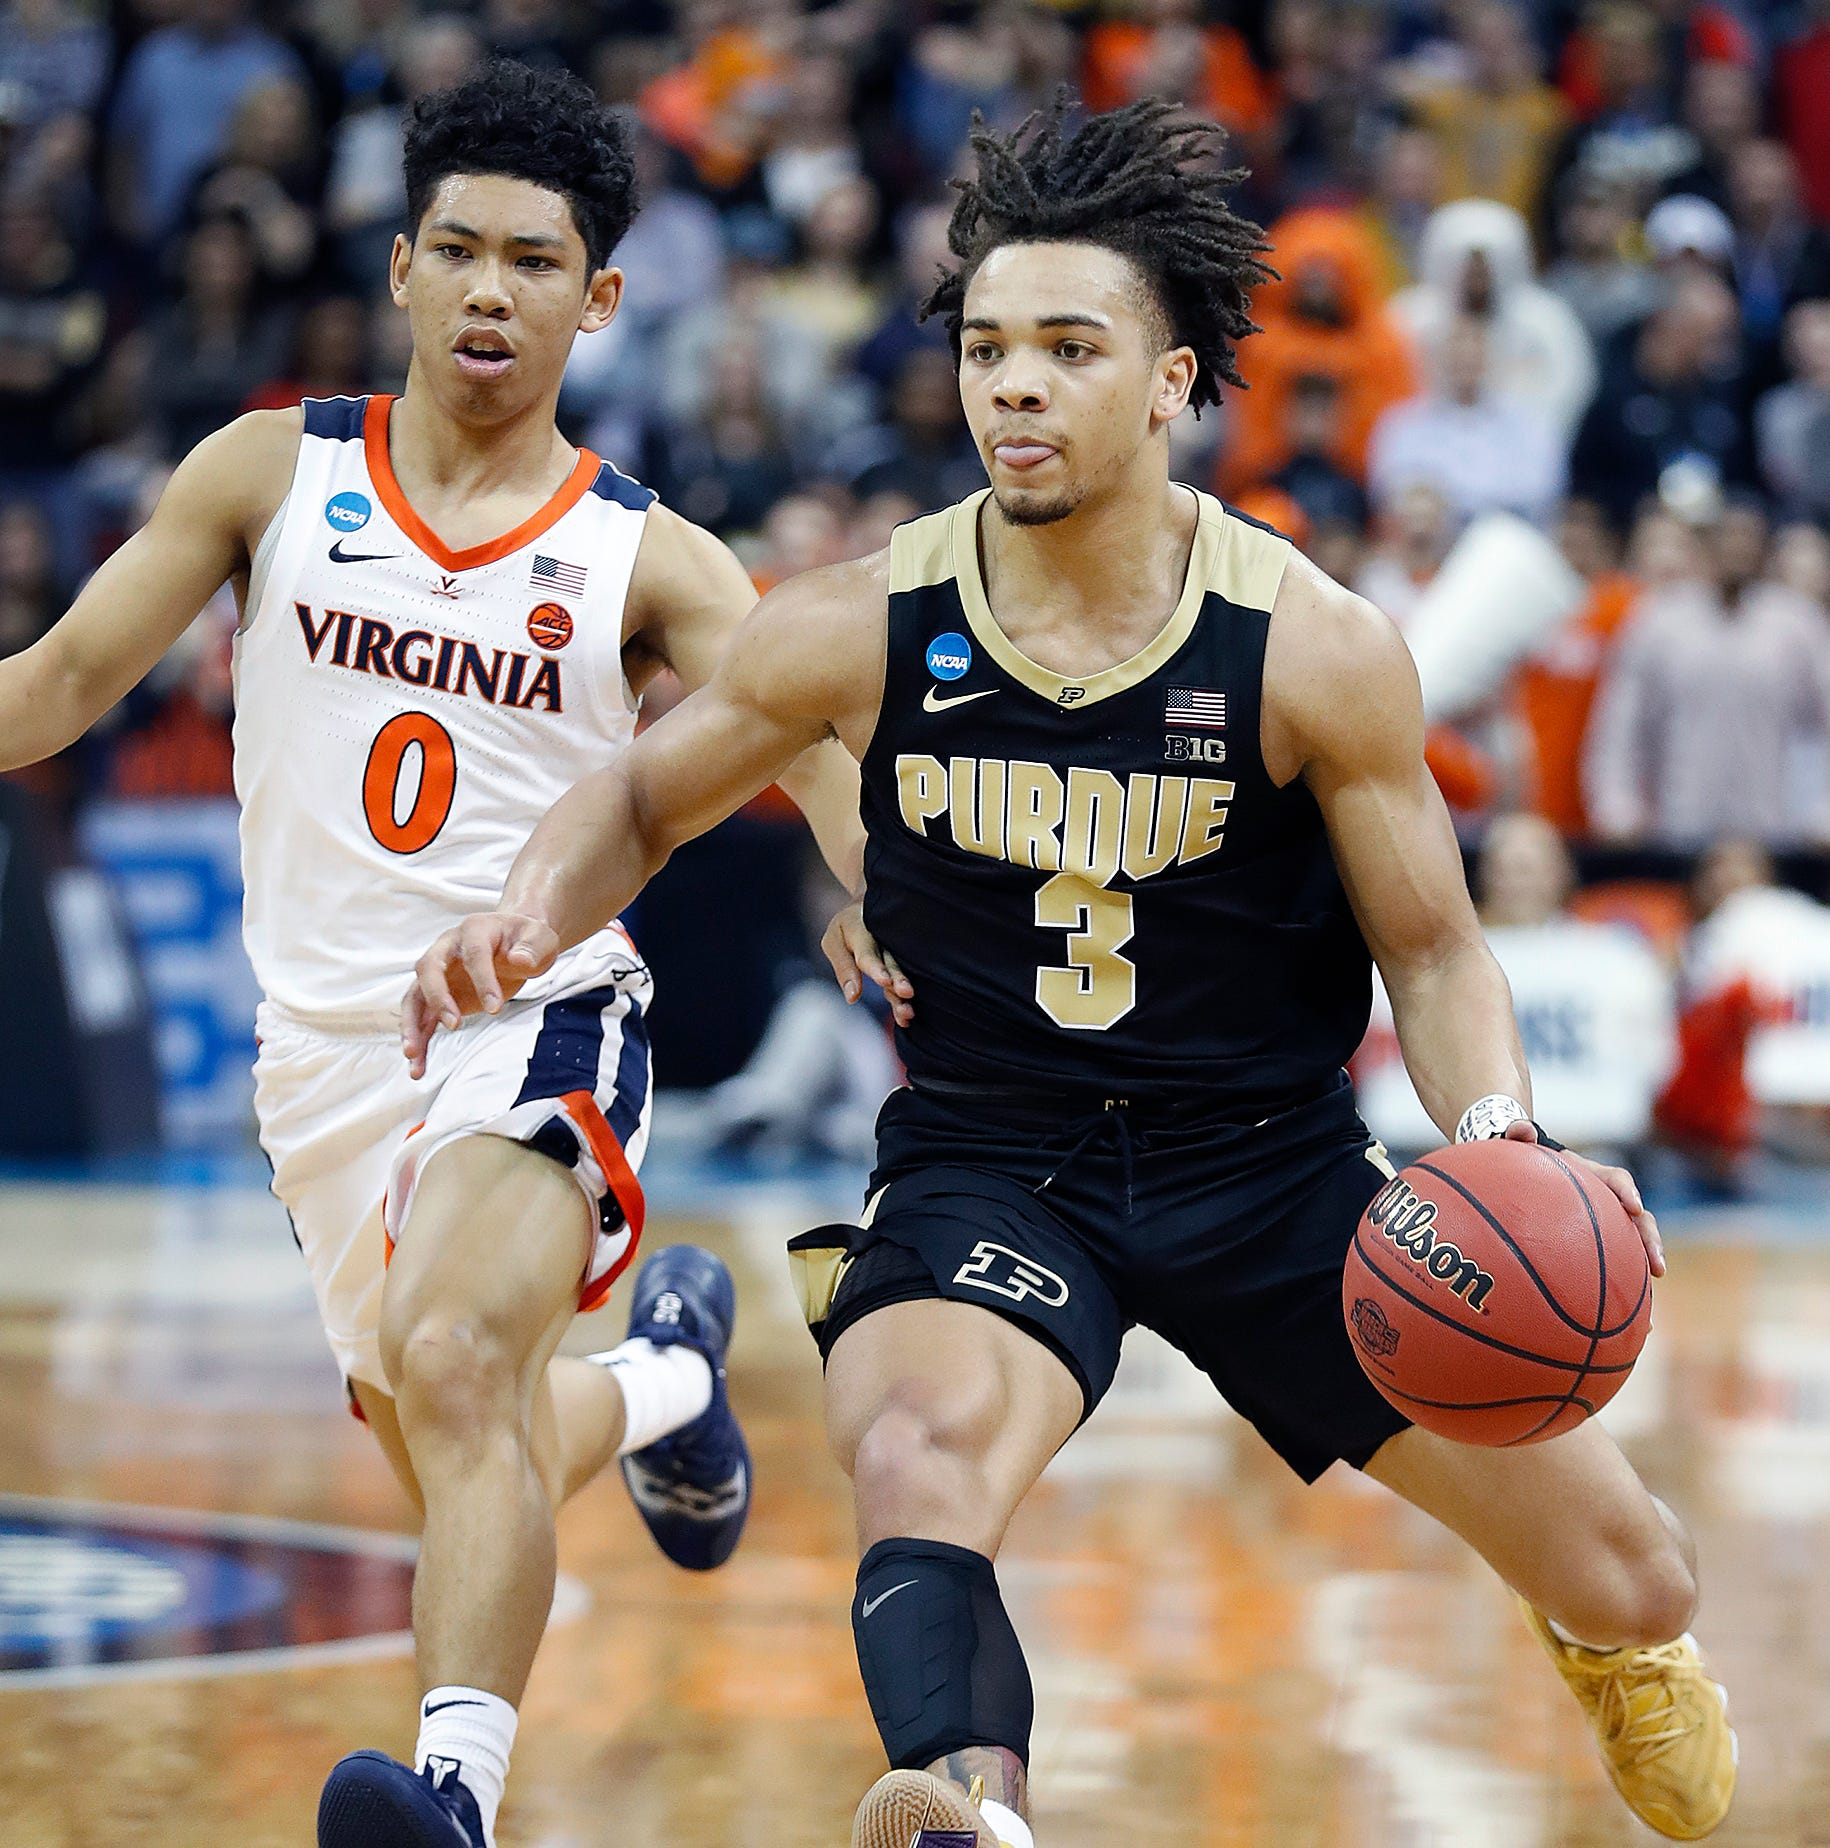 Purdue basketball's Carsen Edwards declares for the NBA Draft